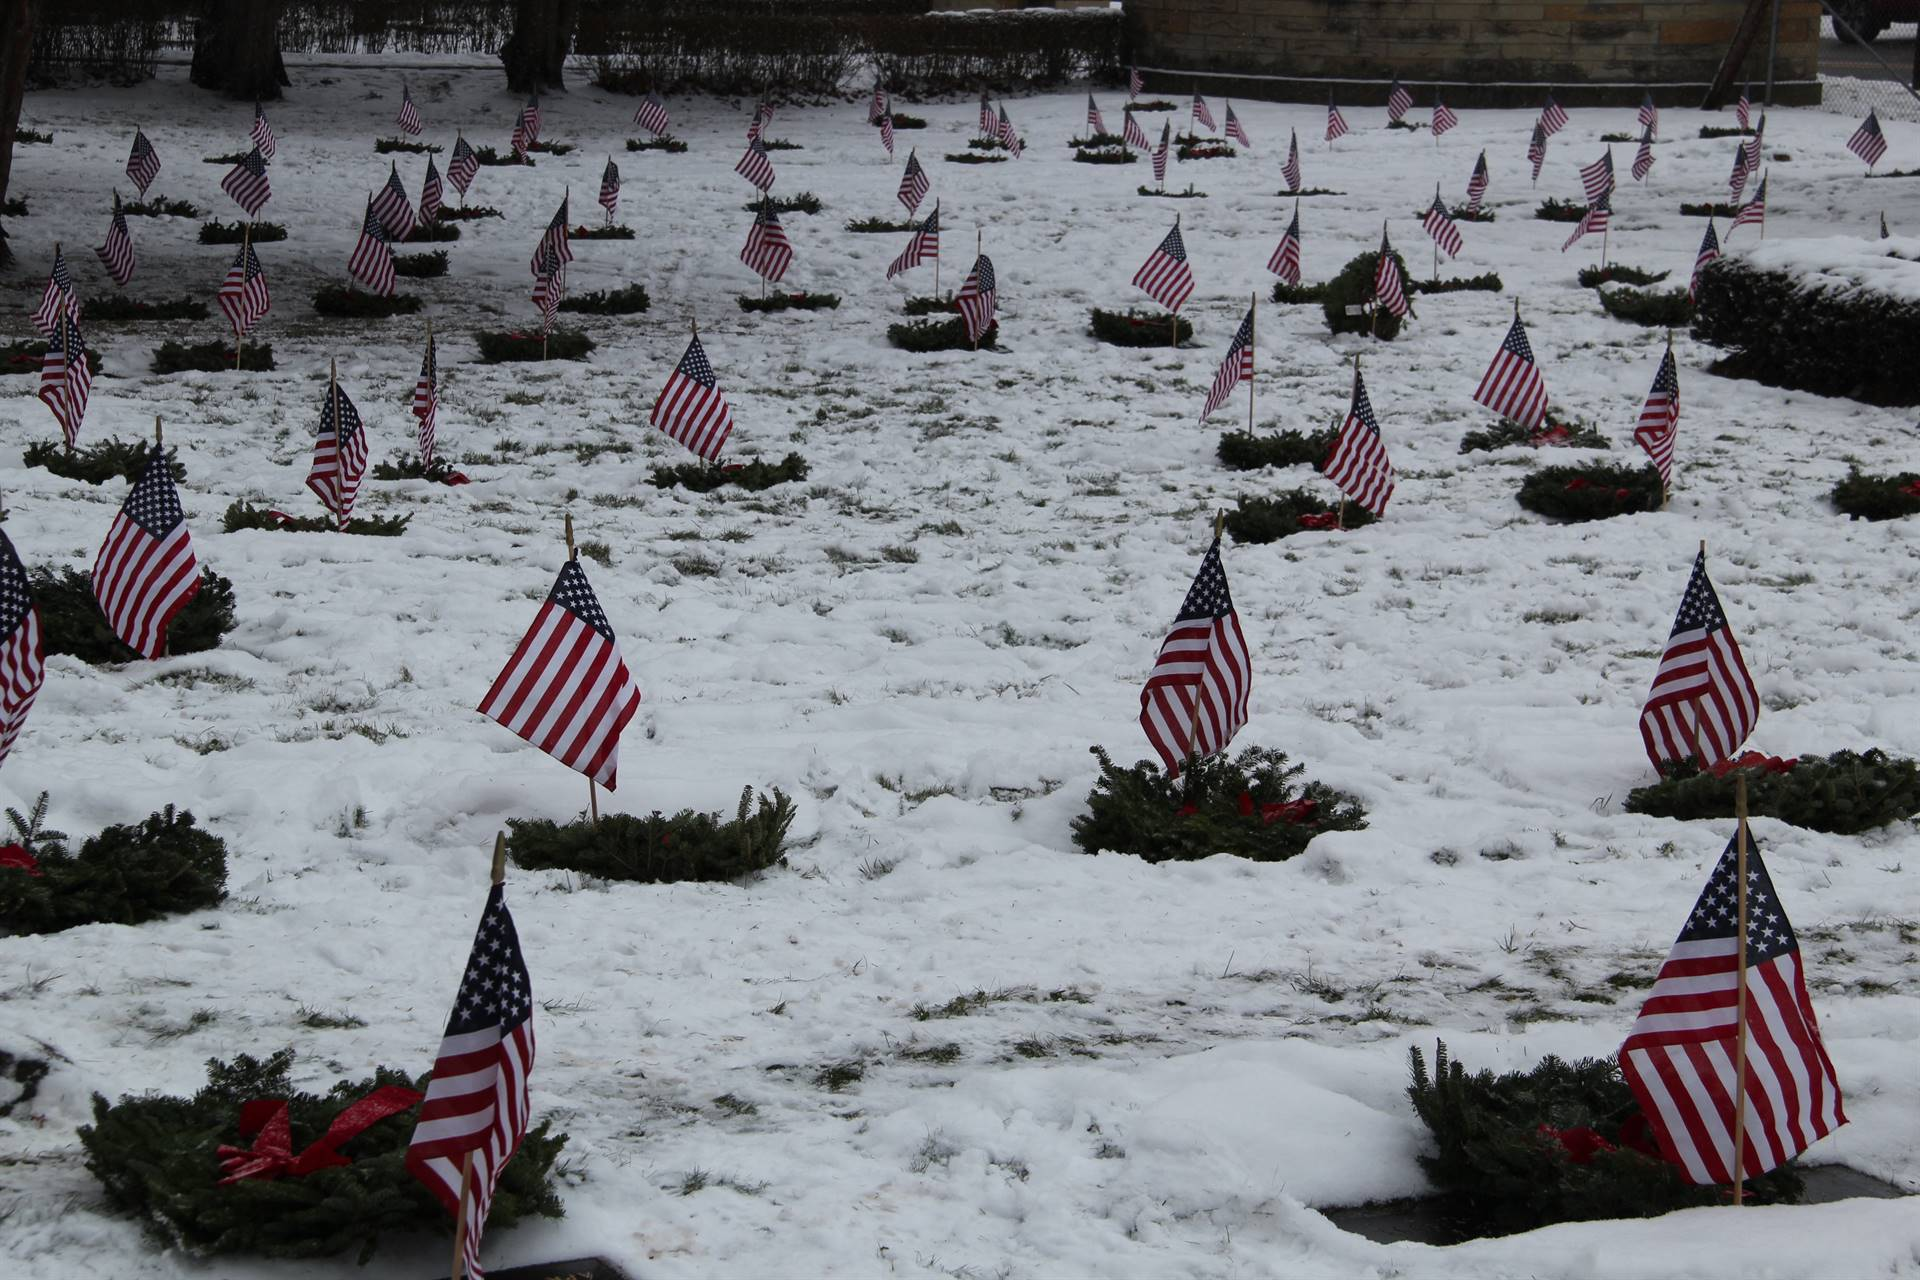 wide shot of people standing and taking wreaths out of boxes